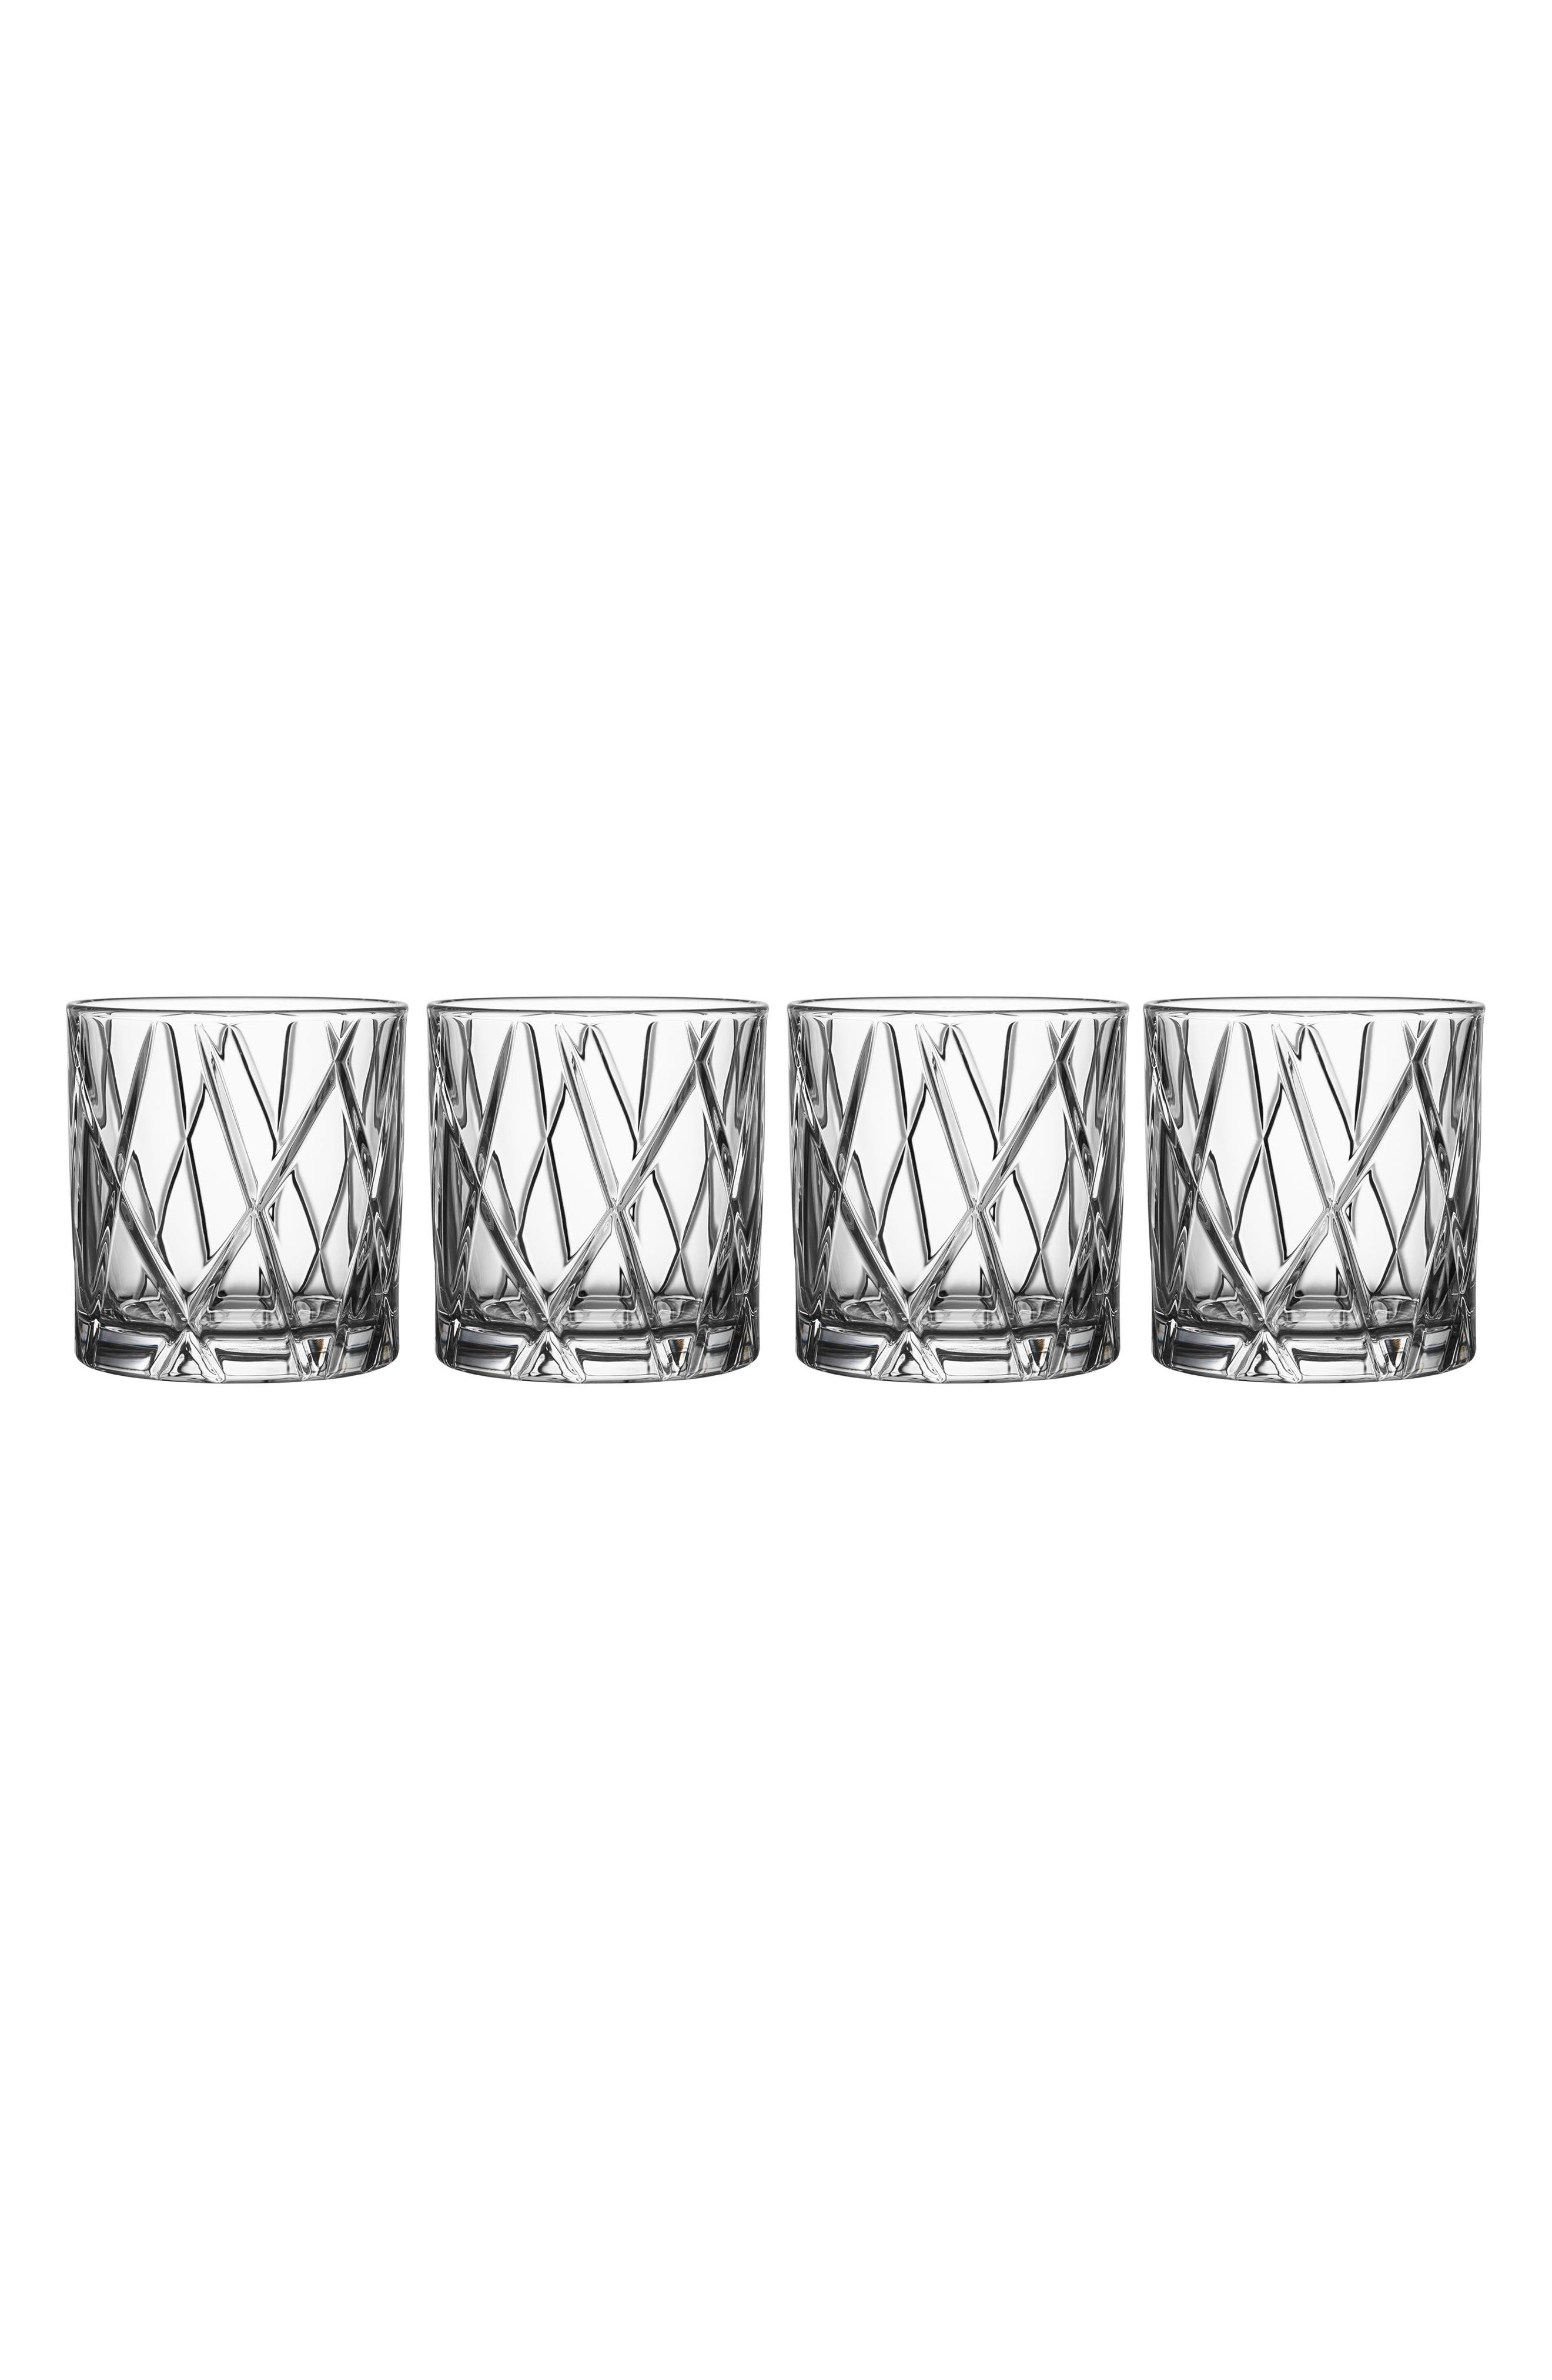 City Set of 4 Crystal Double Old Fashioned Glasses,                         Main,                         color, 100